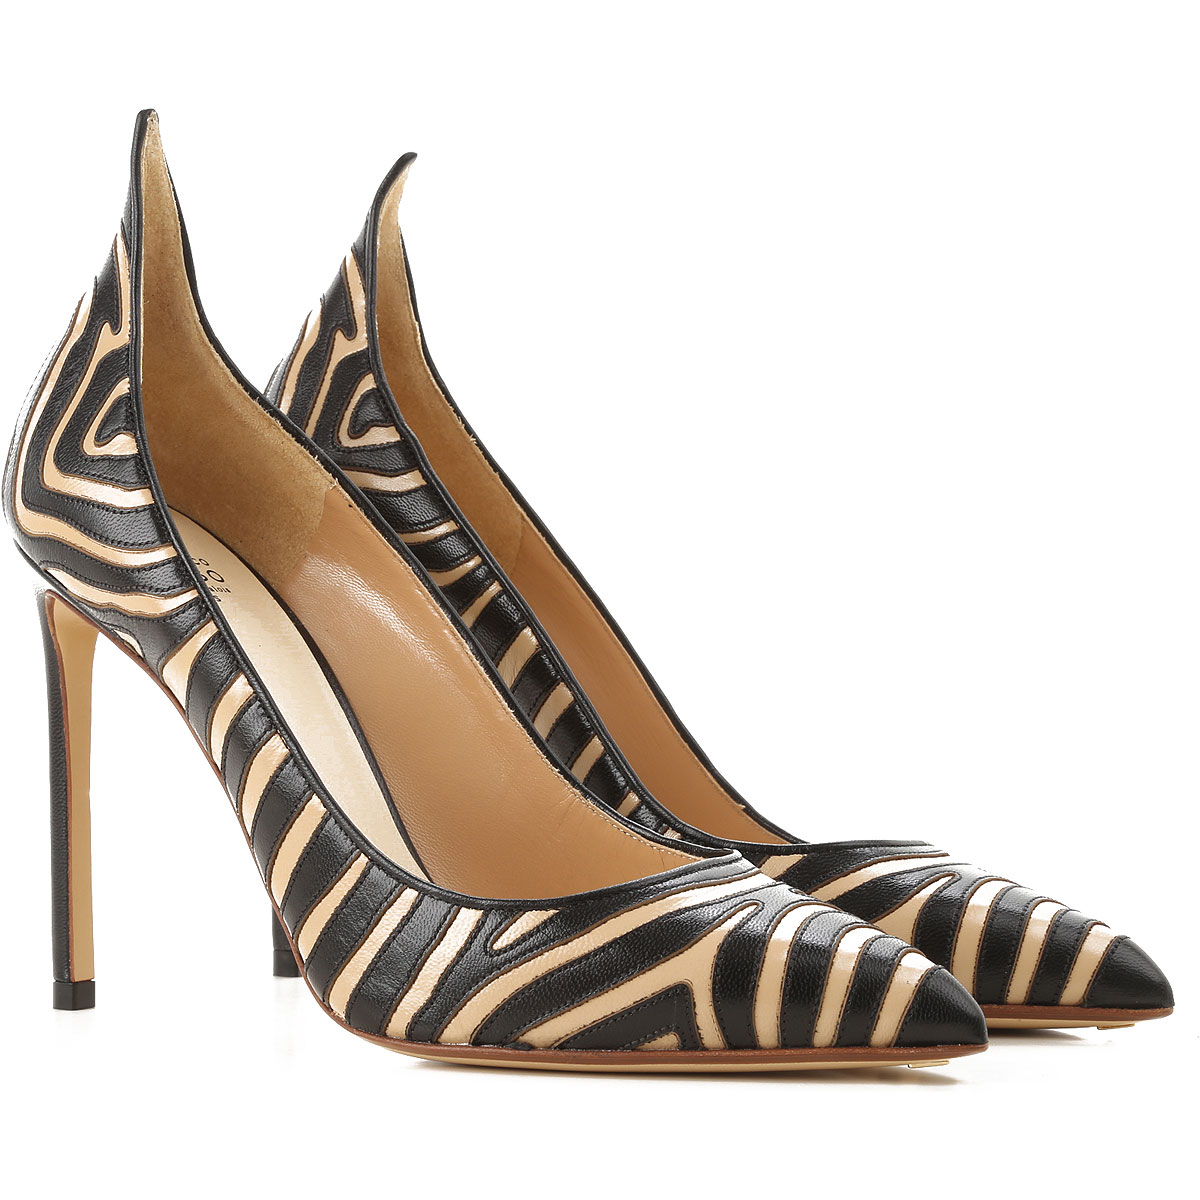 Image of Francesco Russo Pumps & High Heels for Women, Sand, Leather, 2017, 10 6 7 8 8.5